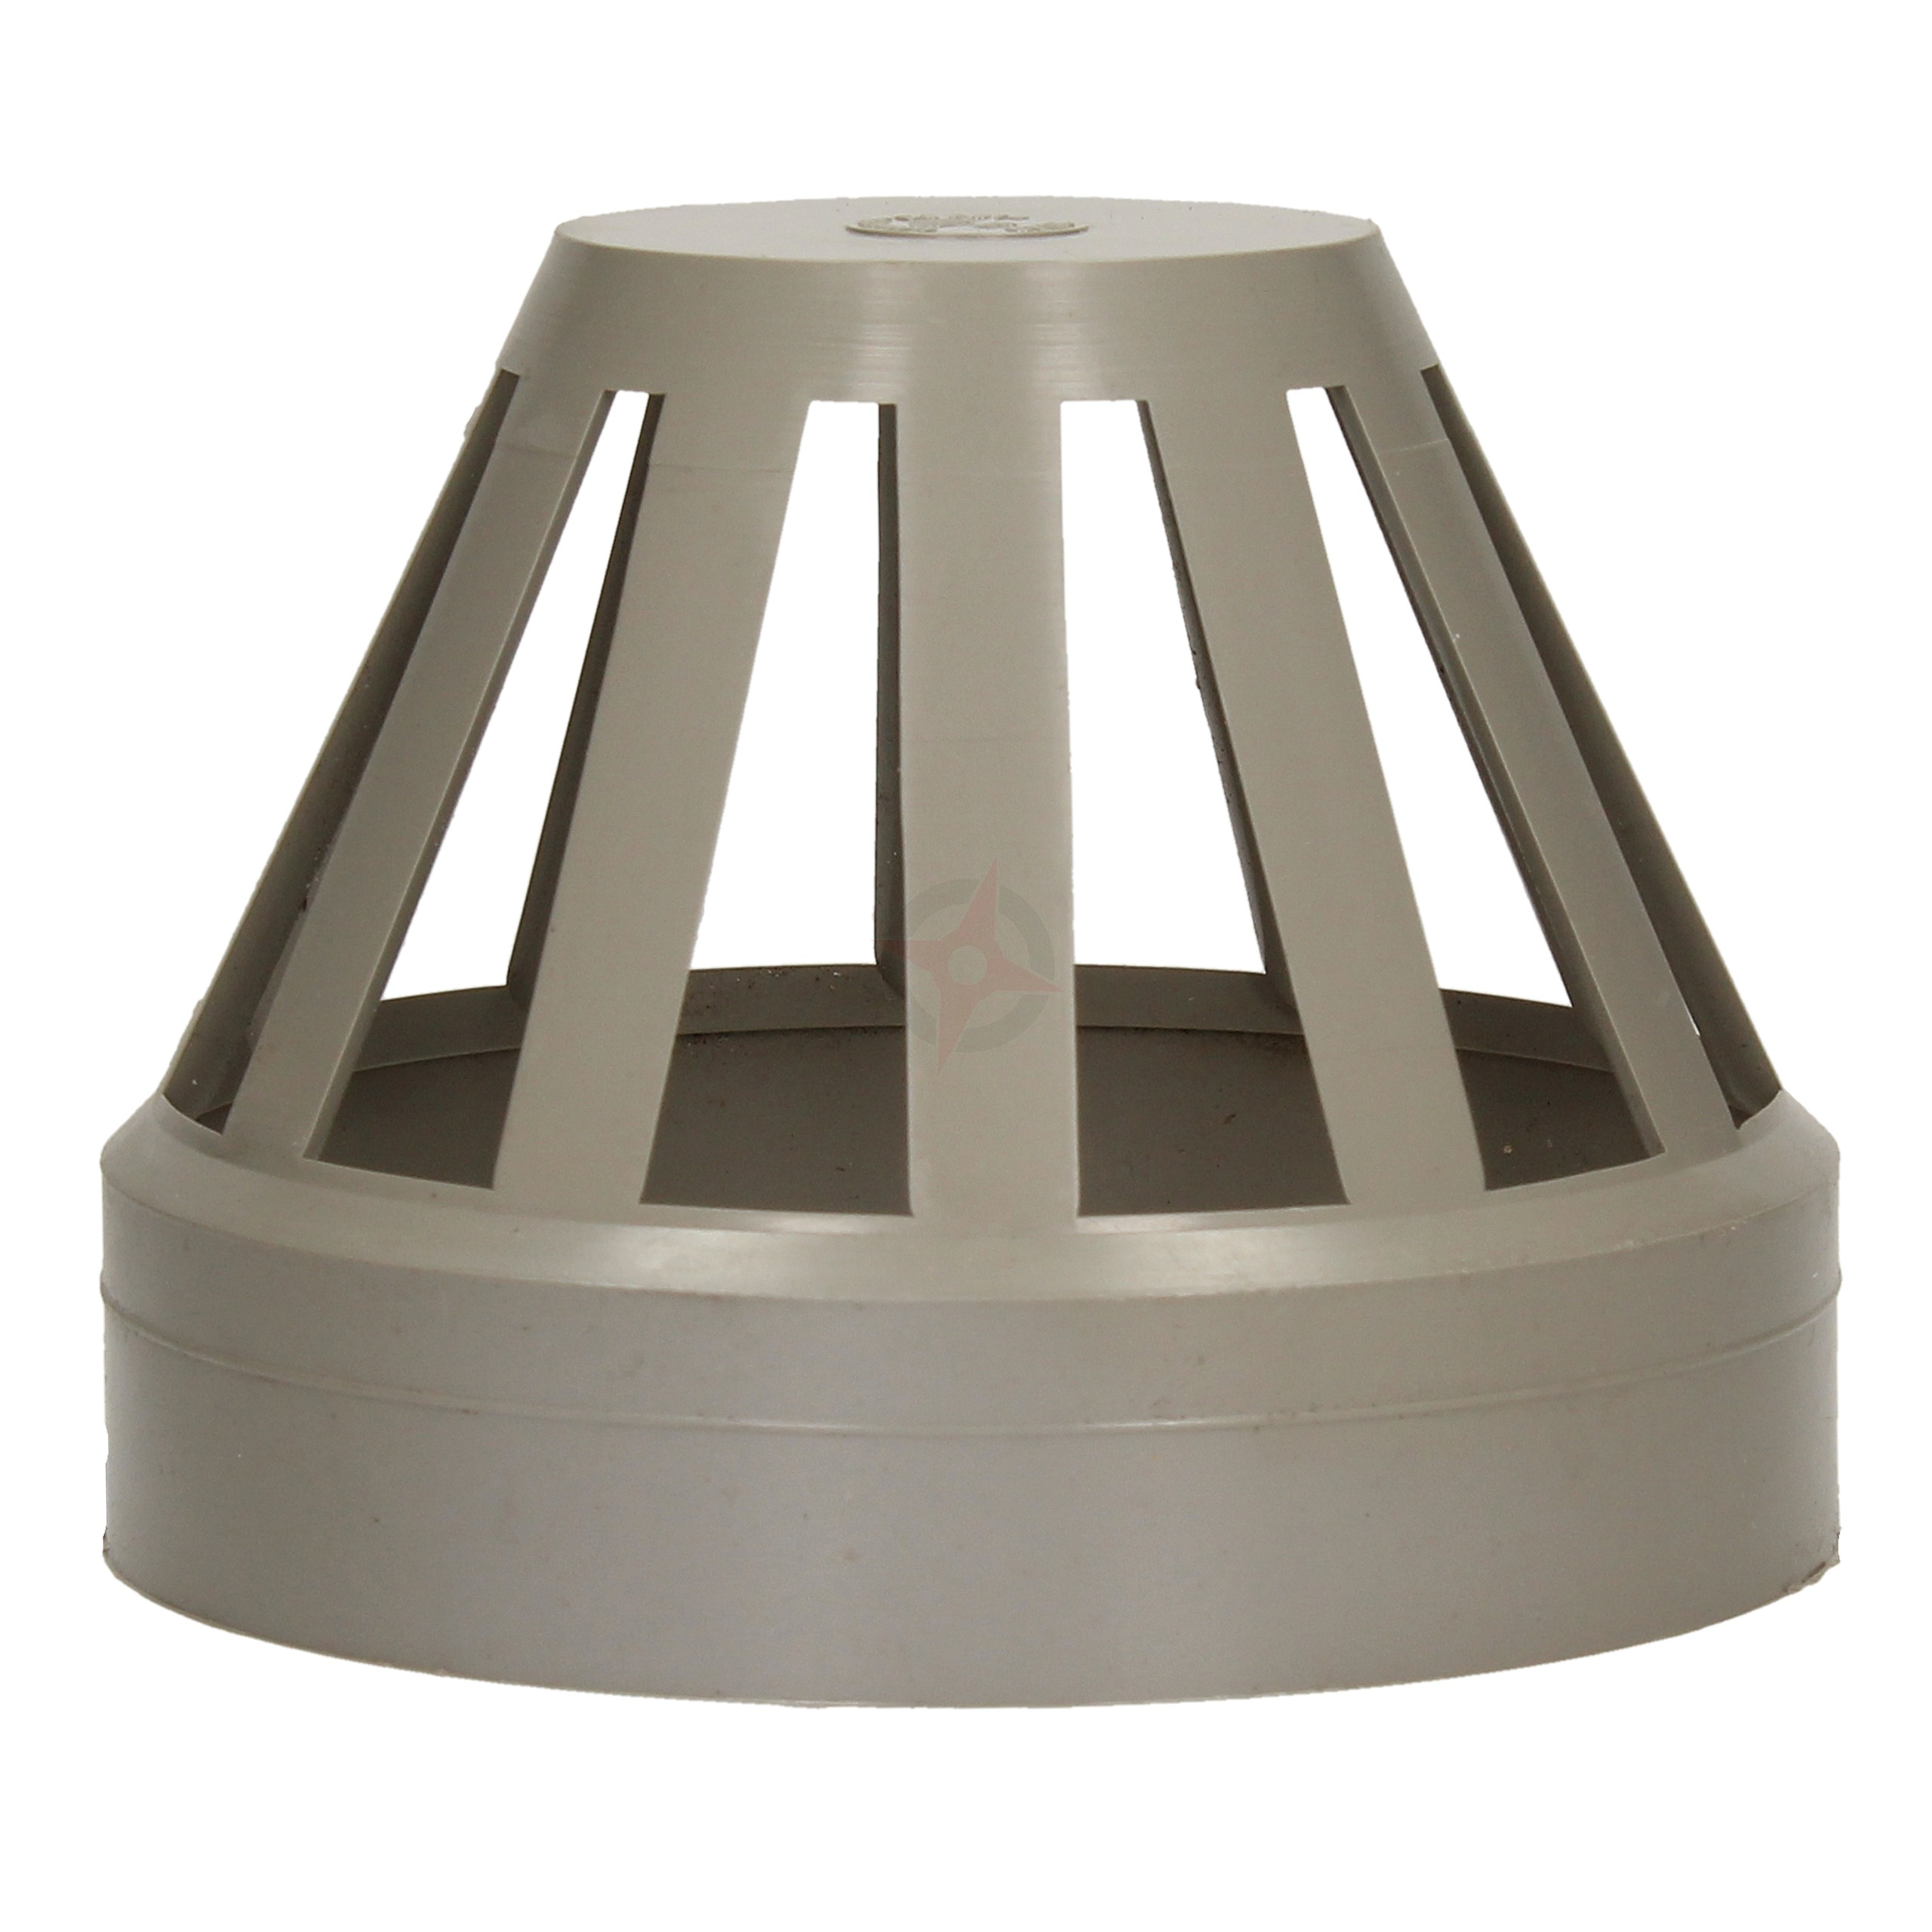 110mm Grey Solvent Weld Soil Vent Terminal